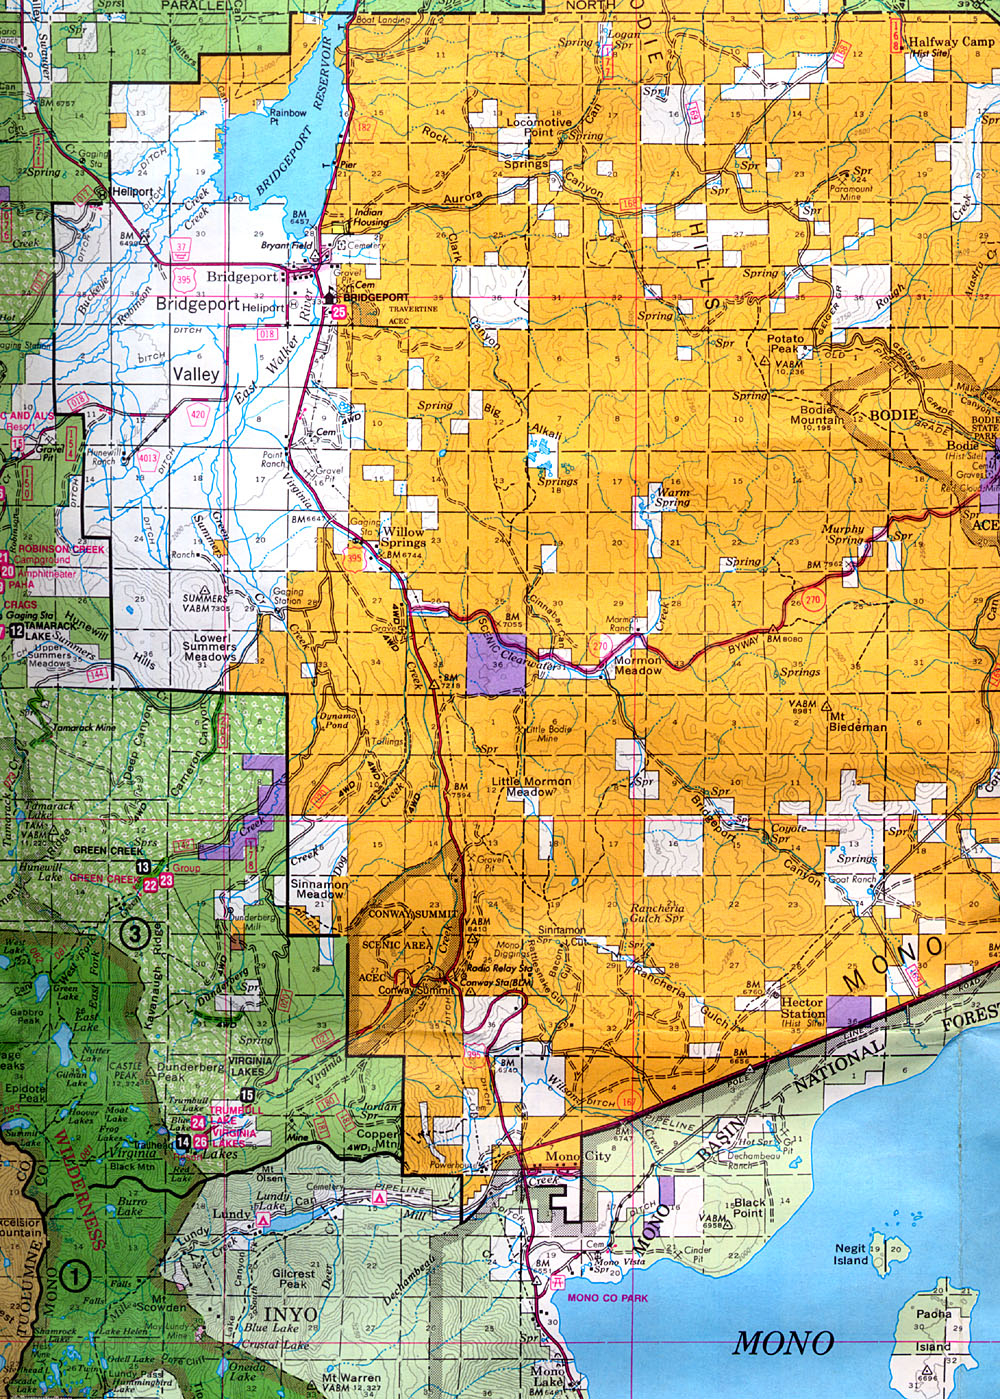 Buy And Find California Maps: Bureau Of Land Management: Southern - Blm Hunting Maps California